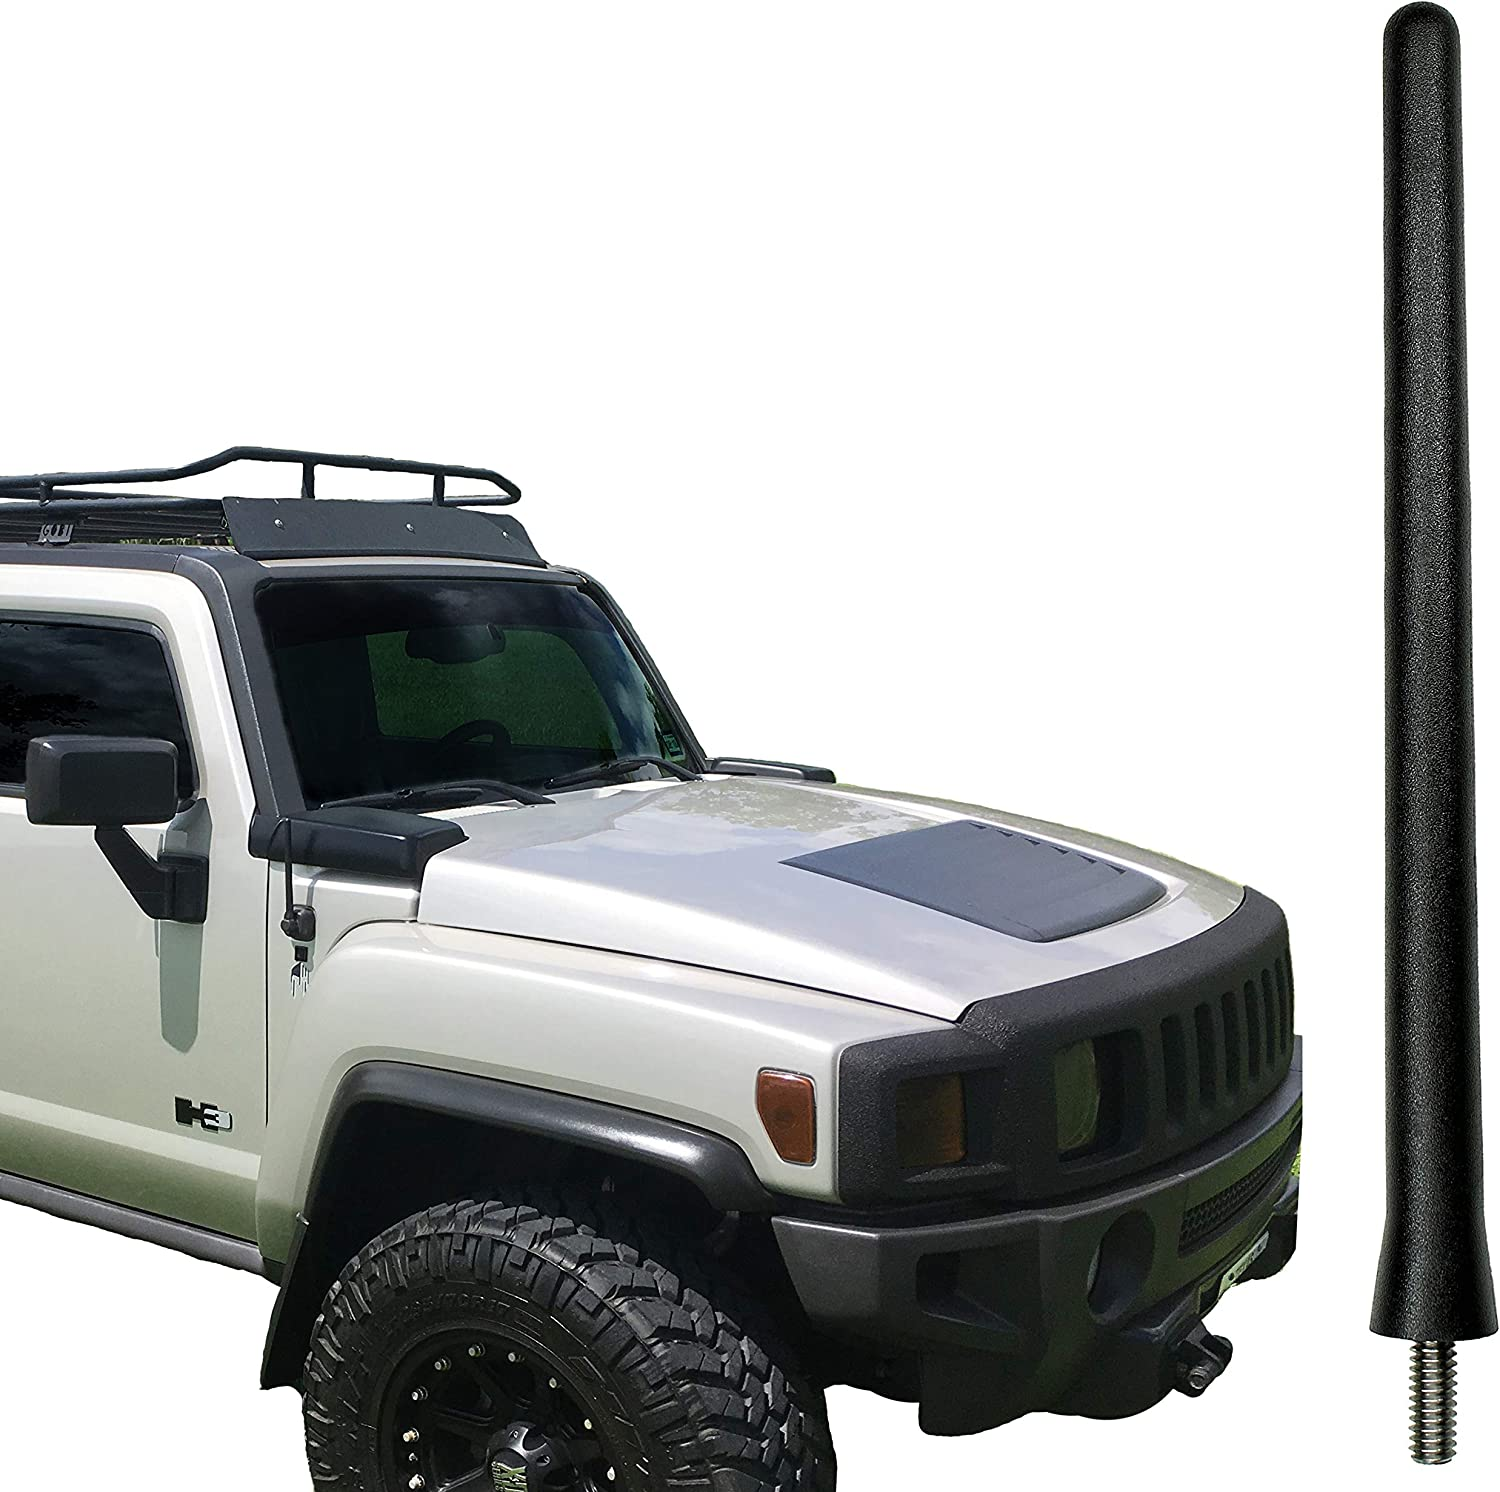 AntennaMastsRus 2003-2009 - Spring Steel Internal CORE 13 All-Terrain Flexible Rubber Antenna is Compatible with Kia Sorento